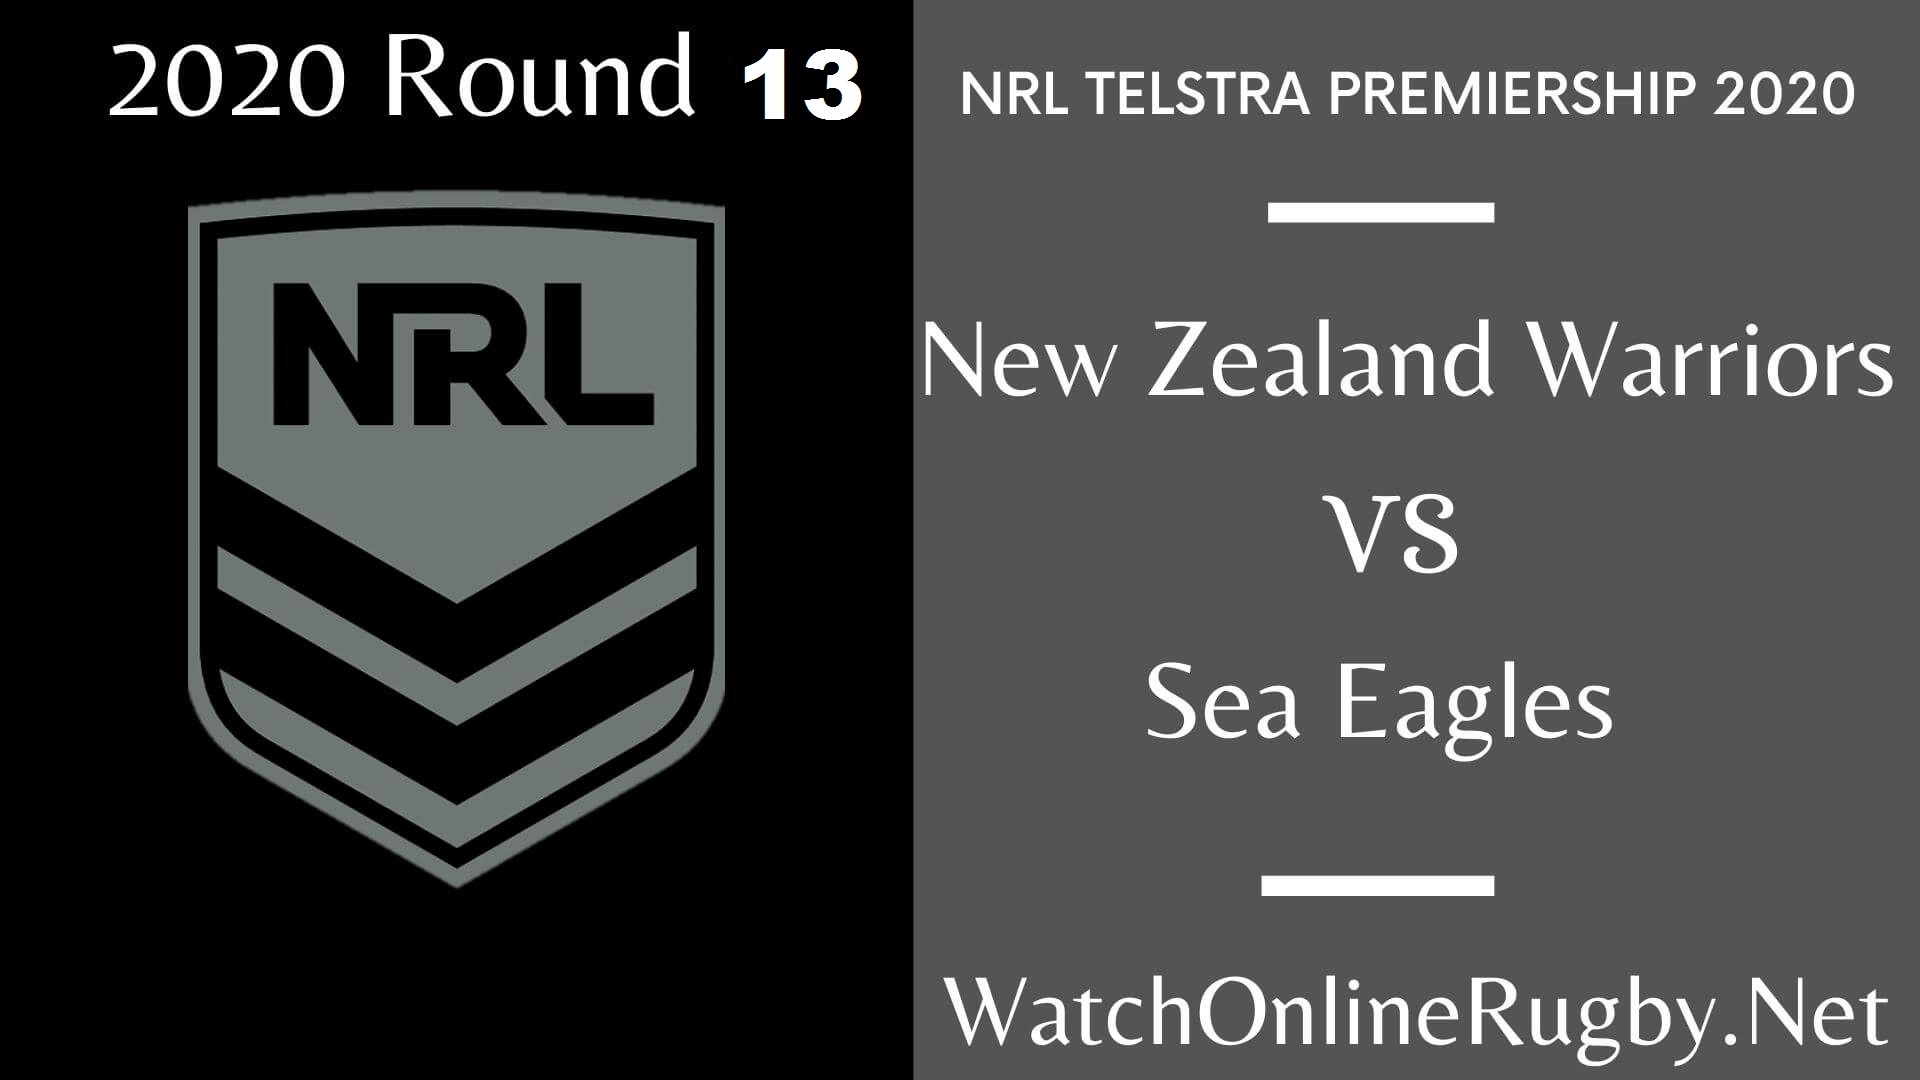 Sea Eagles Vs New Zealand Warriors Highlights 2020 Round 13 Nrl Rugby